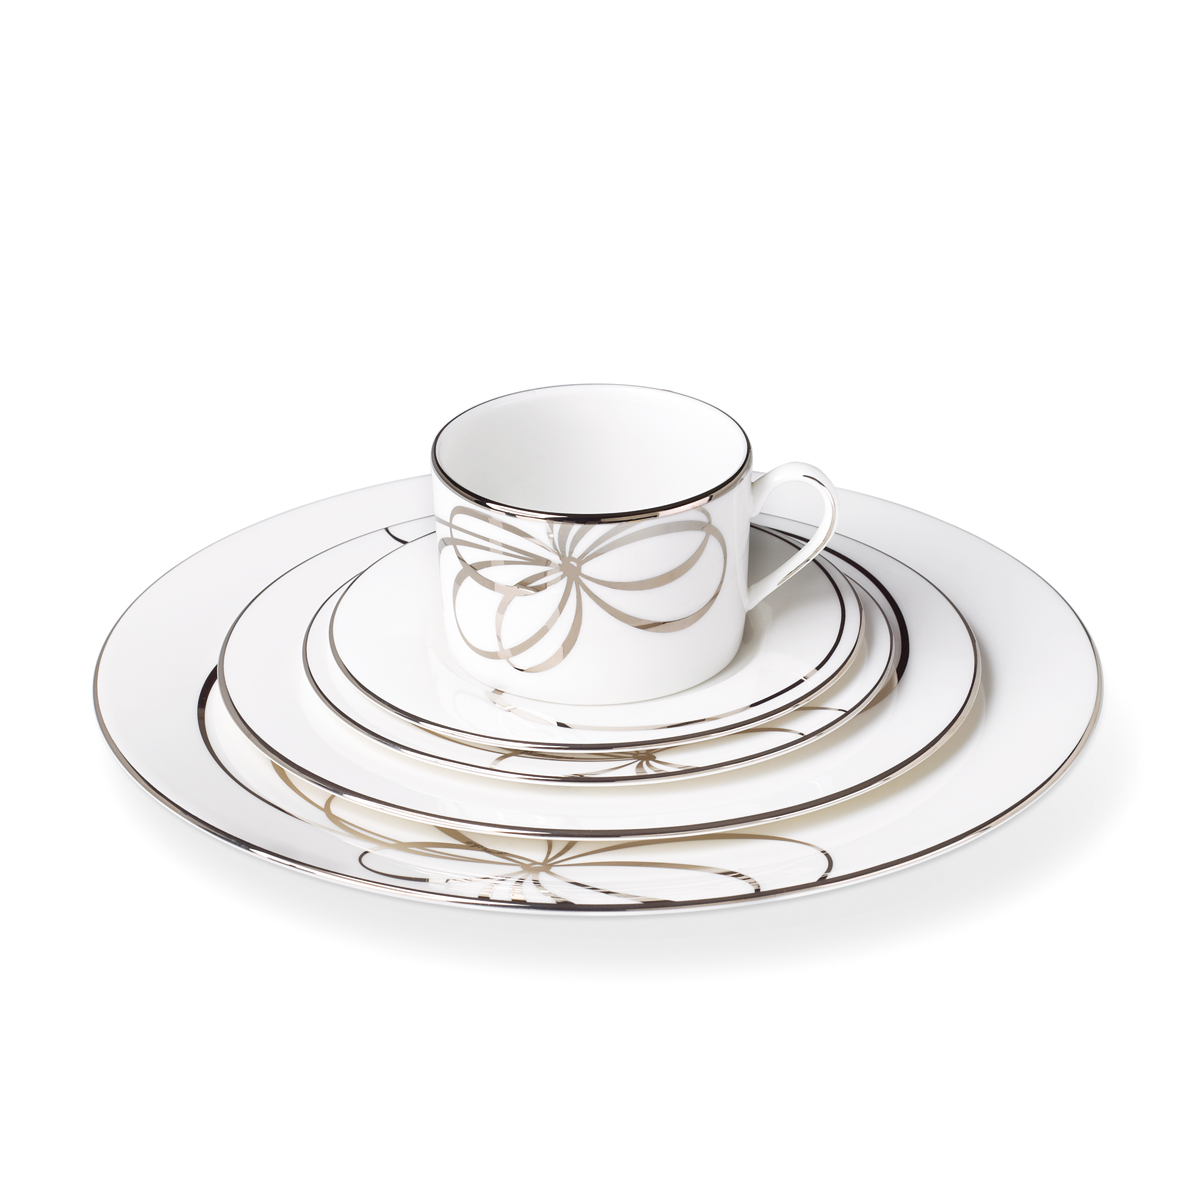 Lenox China kate spade Belle Boulevard, 5 Piece Place Setting